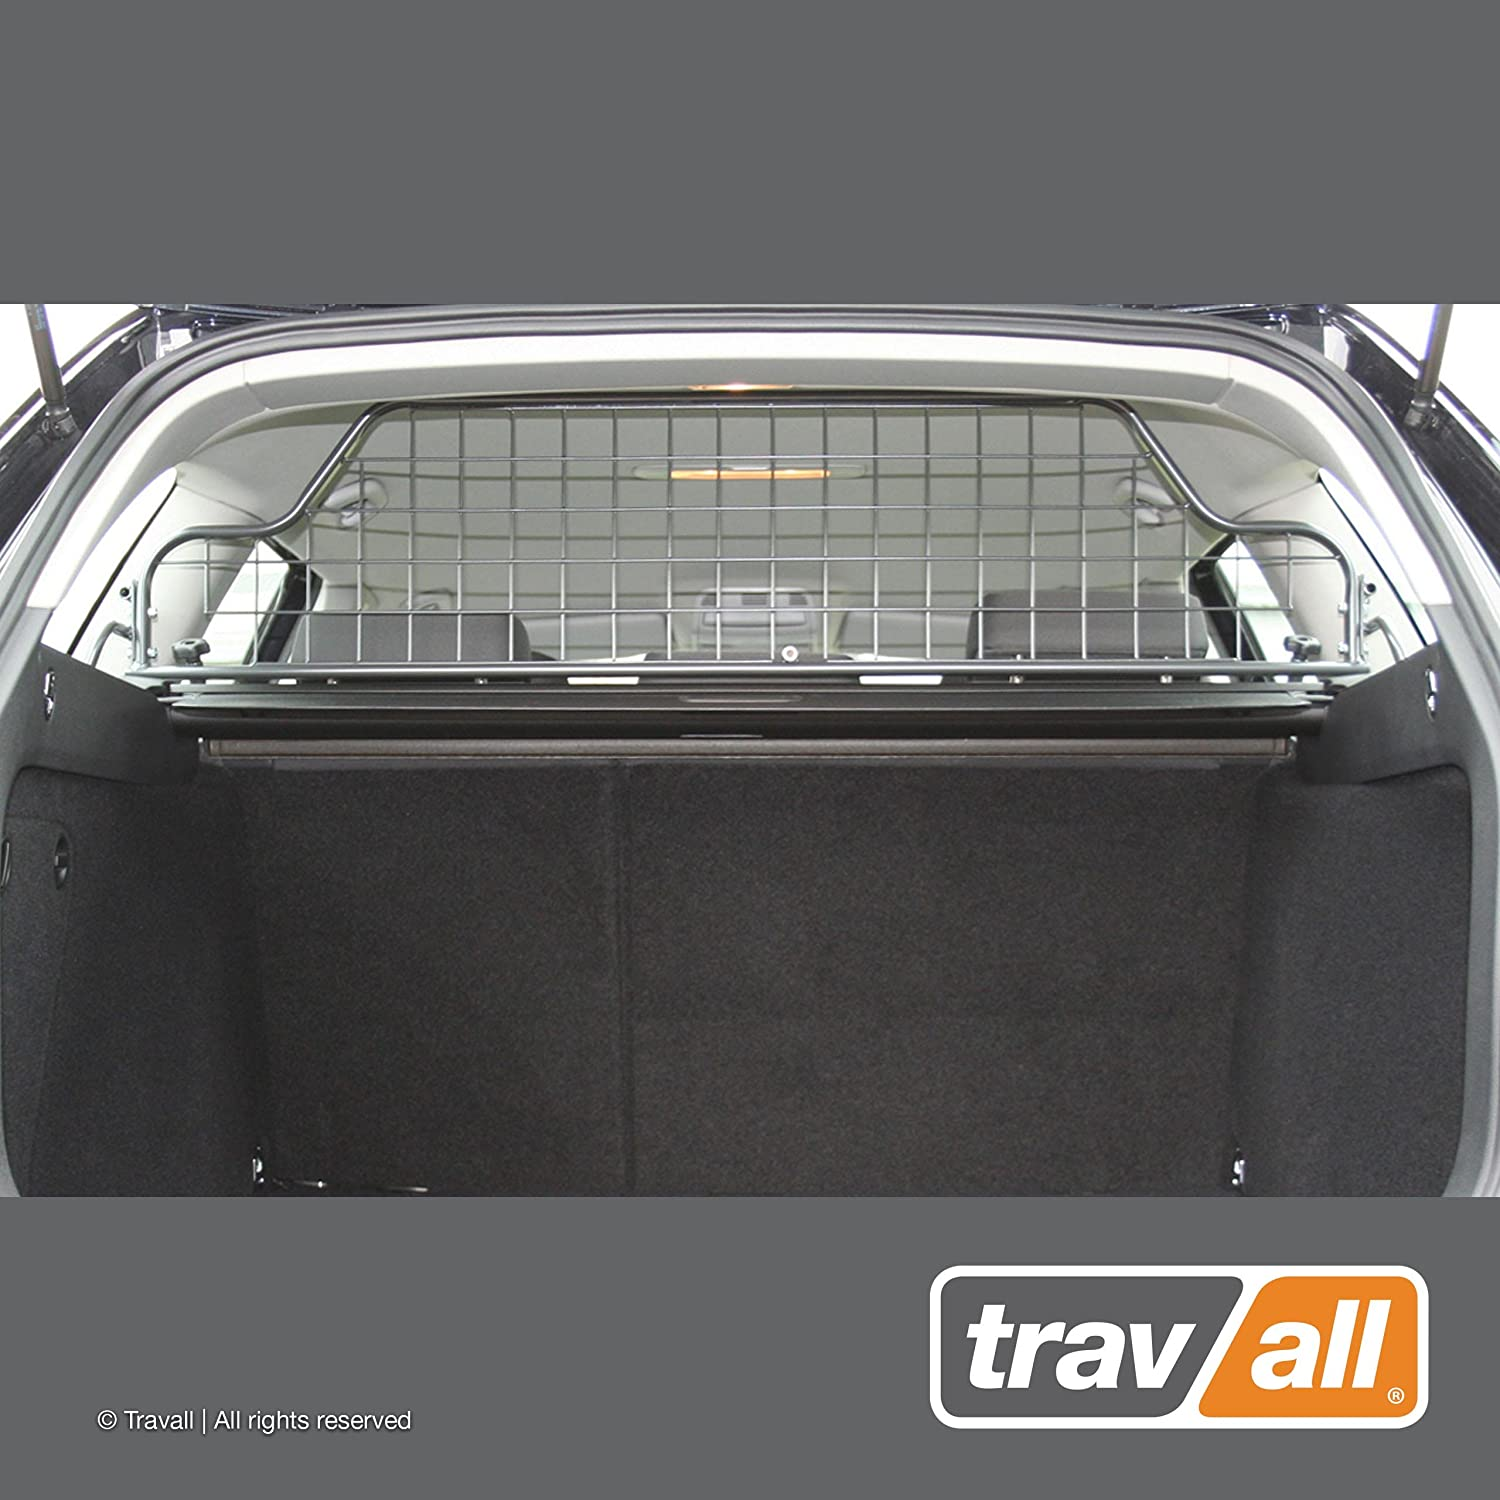 Travall Guard Compatible with Volkswagen Golf Wagon Without Sunroof 2007-2013 Jetta SportWagen 2005-2015 TDG1094 – Rattle-Free Steel Pet Barrier